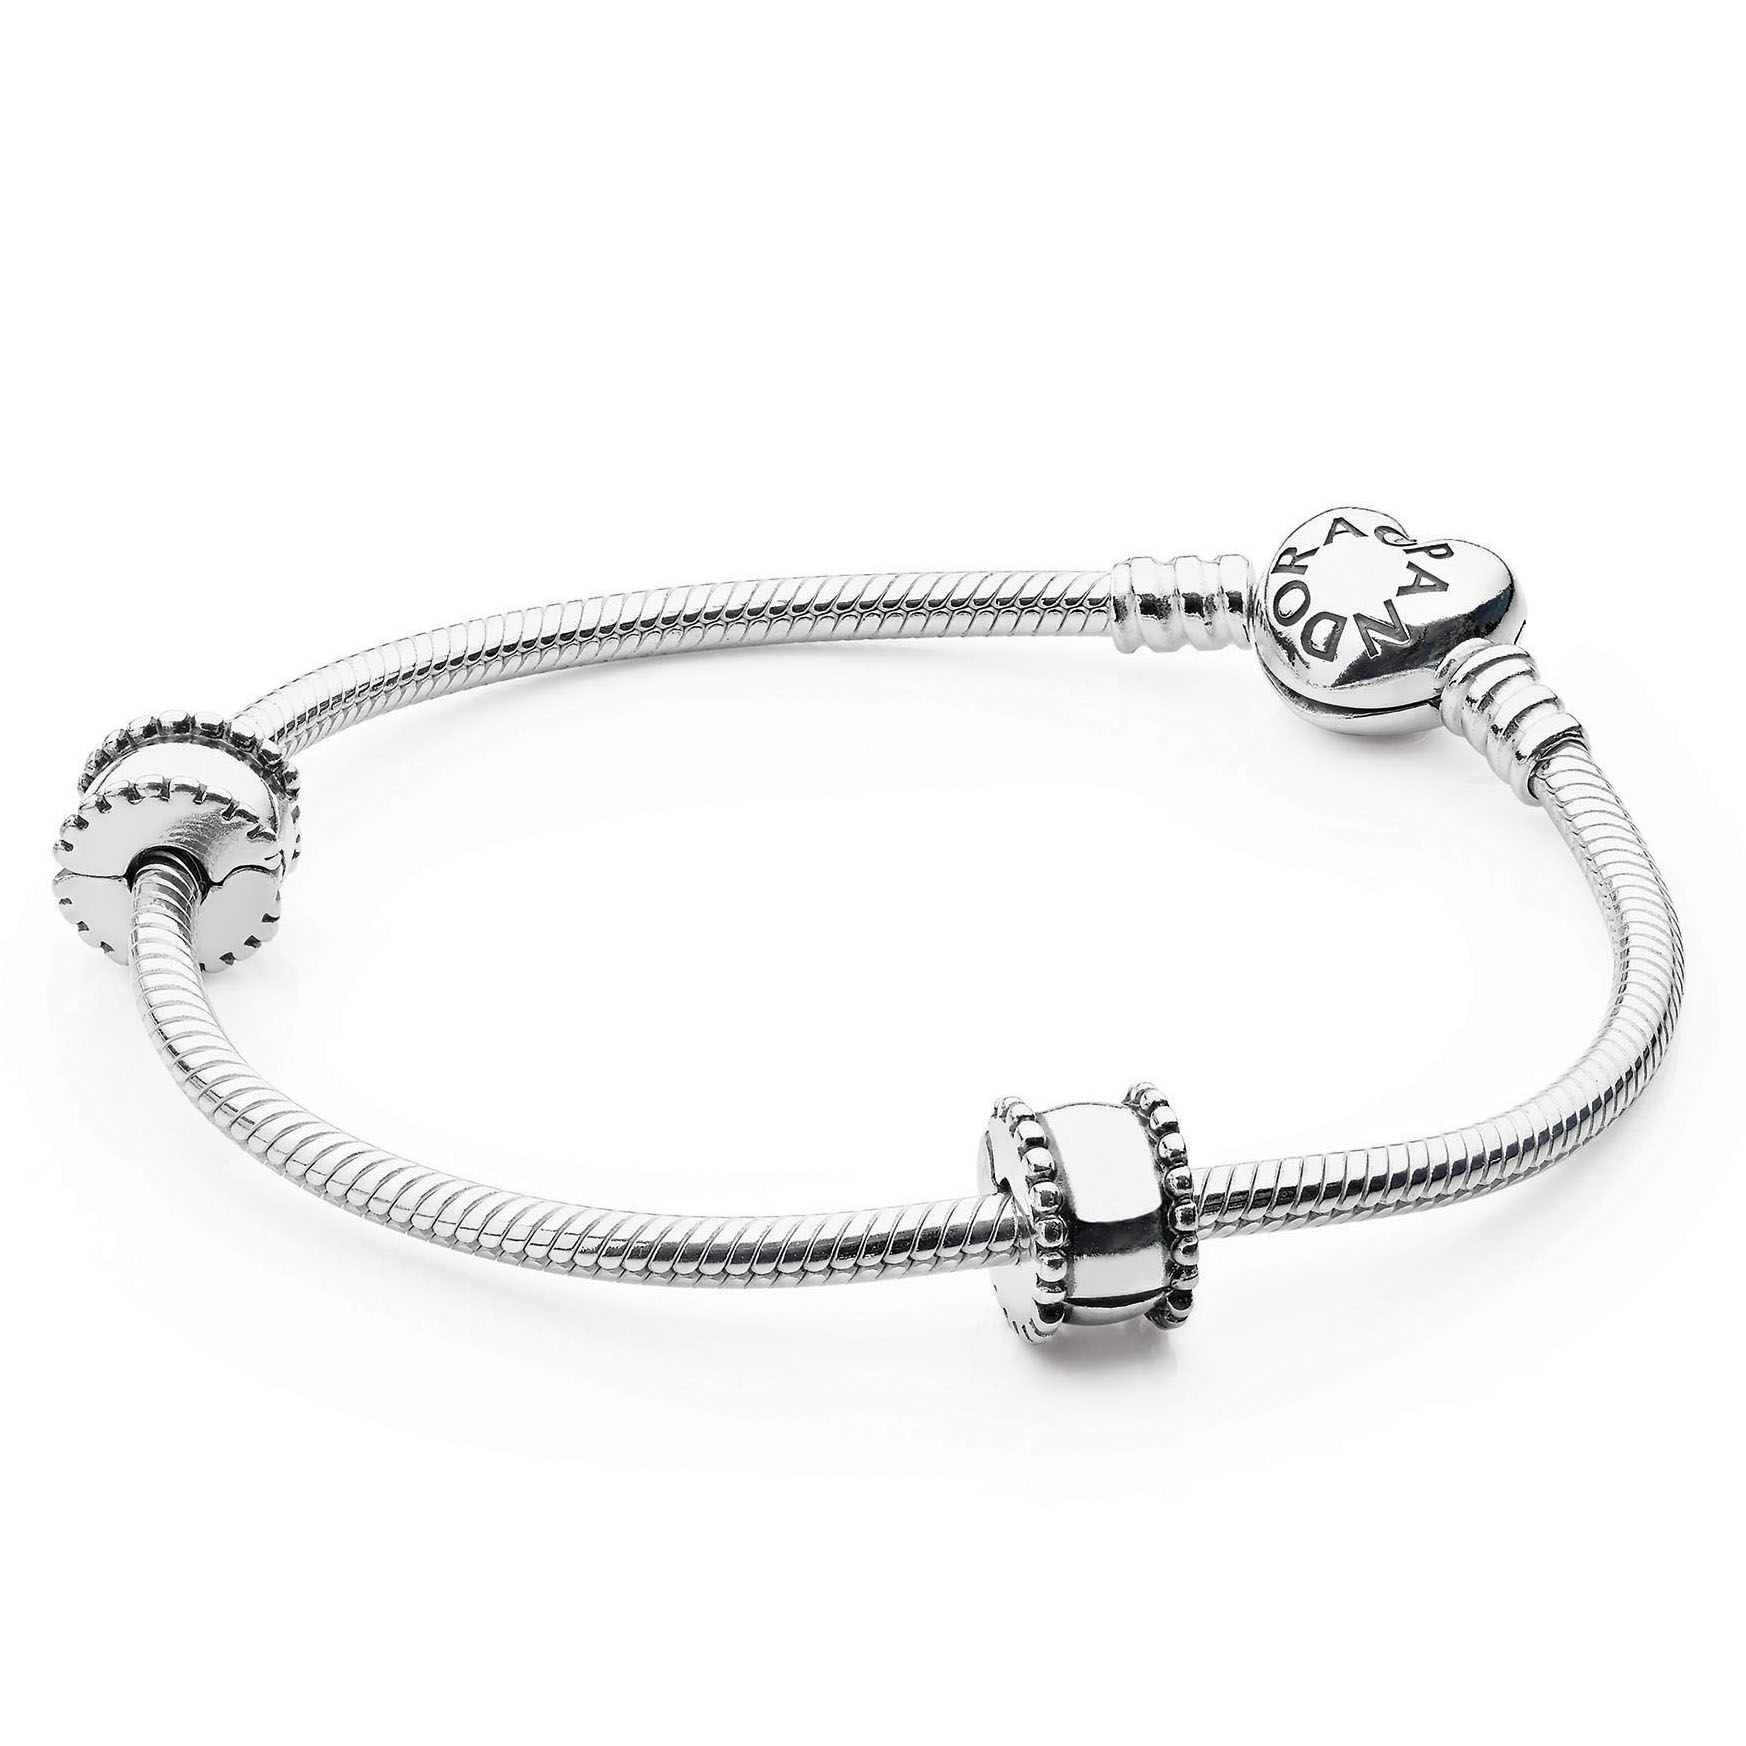 resized collection review winter puppy christmas bangle pandora december bangles mora from charms